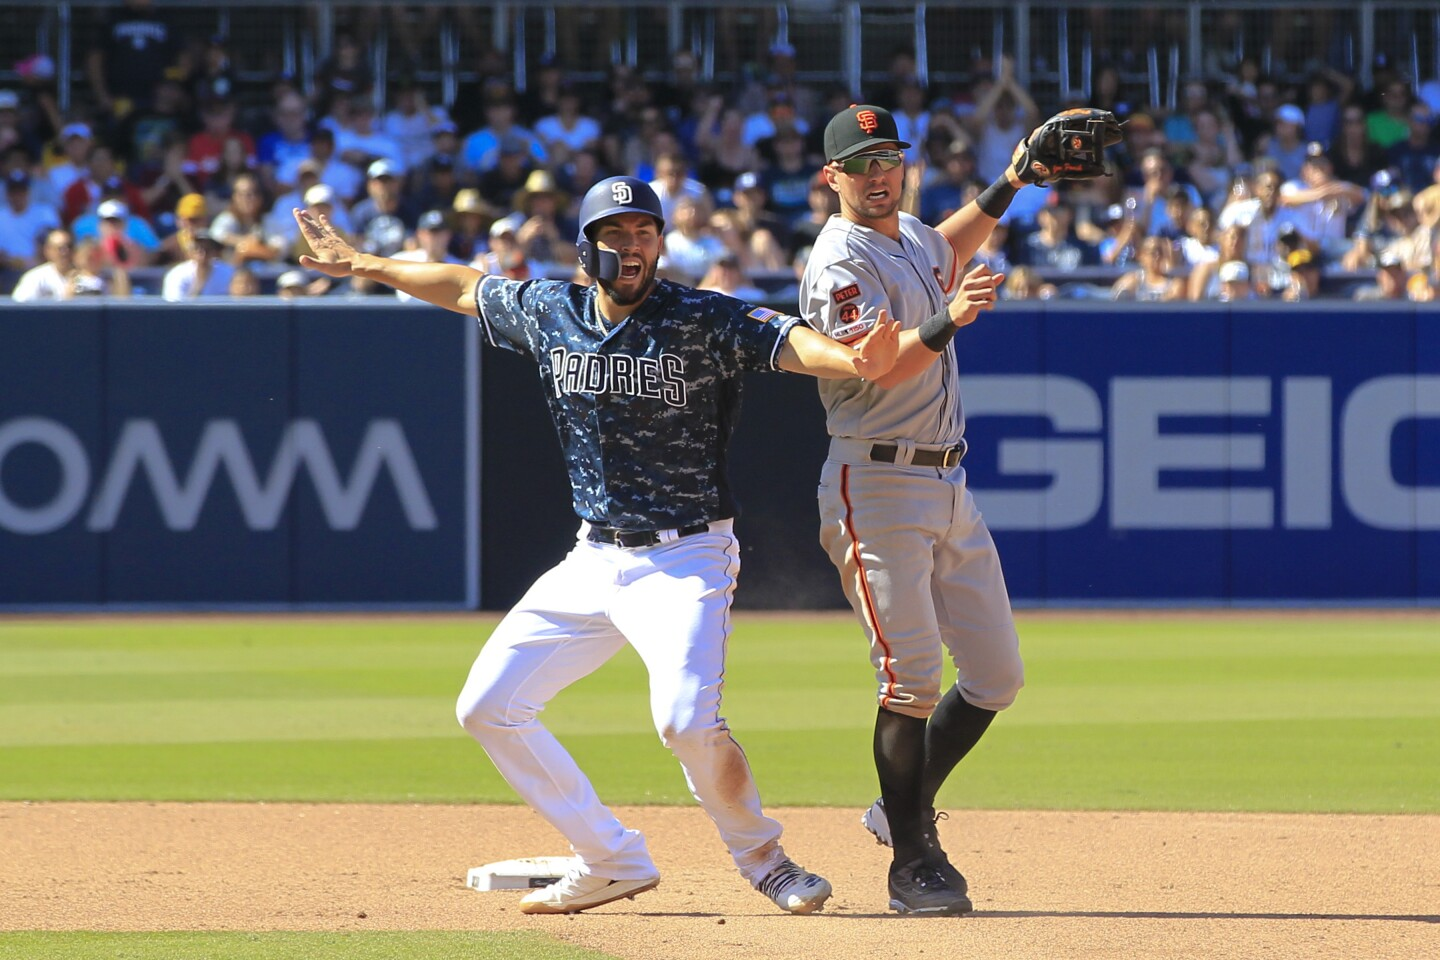 Eric Hosmer reacts on second base as Padres Manny Machado hits a single and scoring Padres Hunter Renfroe from third base. Padres 2-1 in the 7th inning.